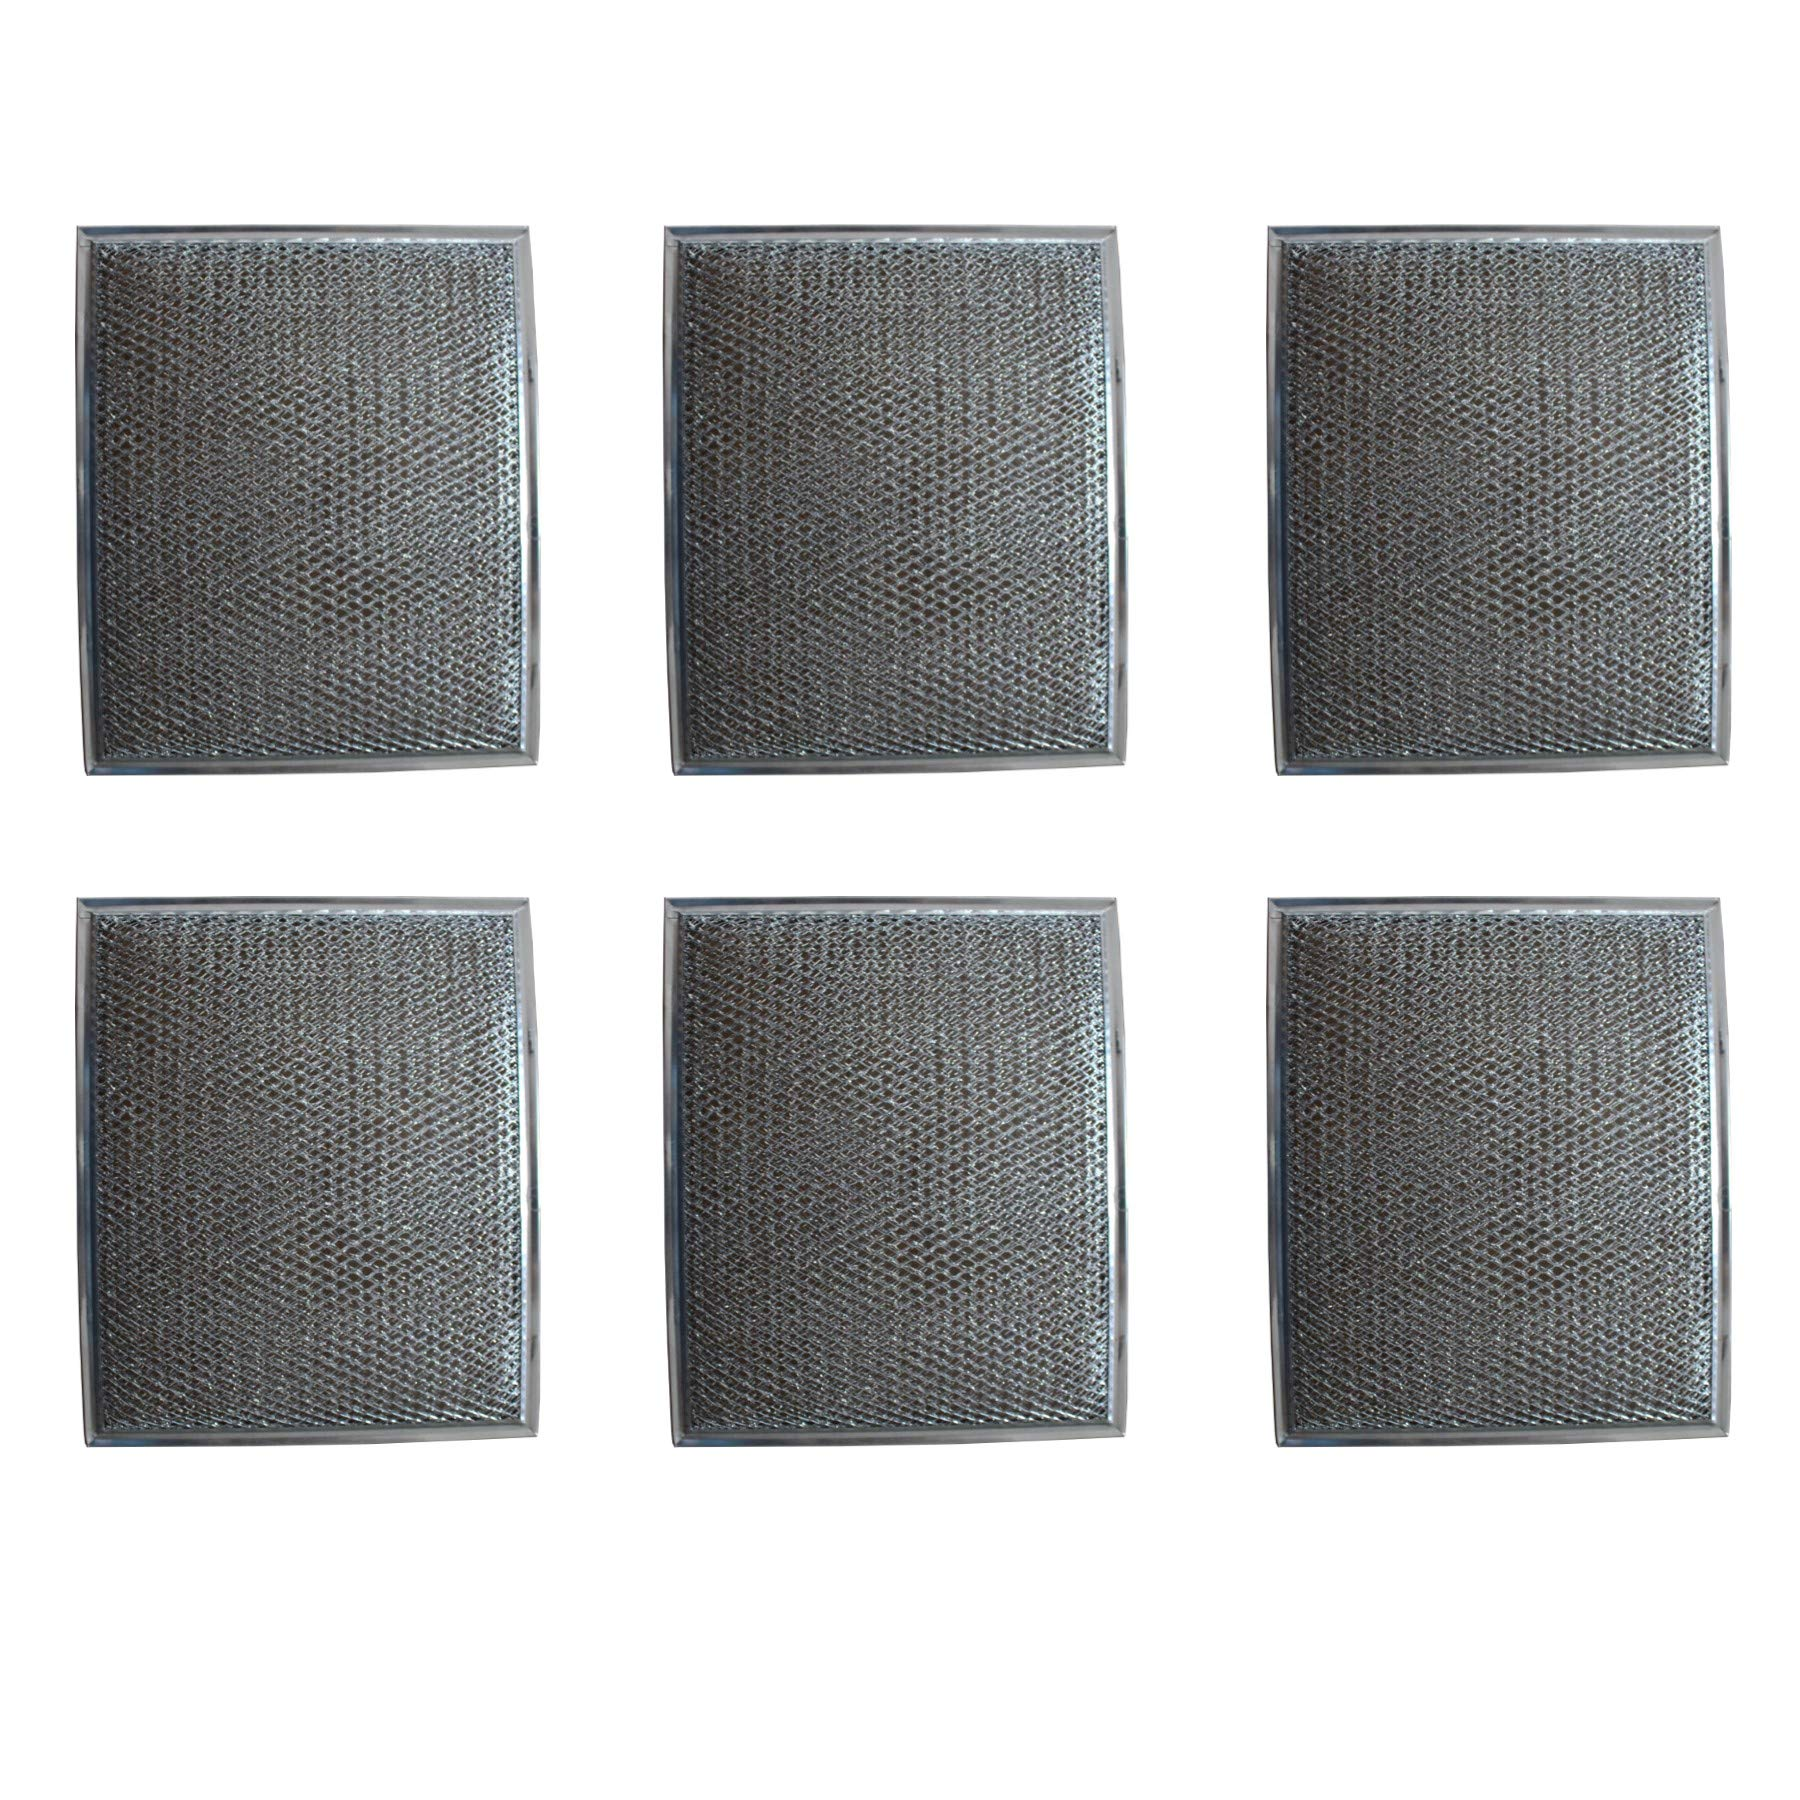 Duraflow Filtration Replacement Aluminum Filter for Many Broan / Nutone Models (6 Pack)